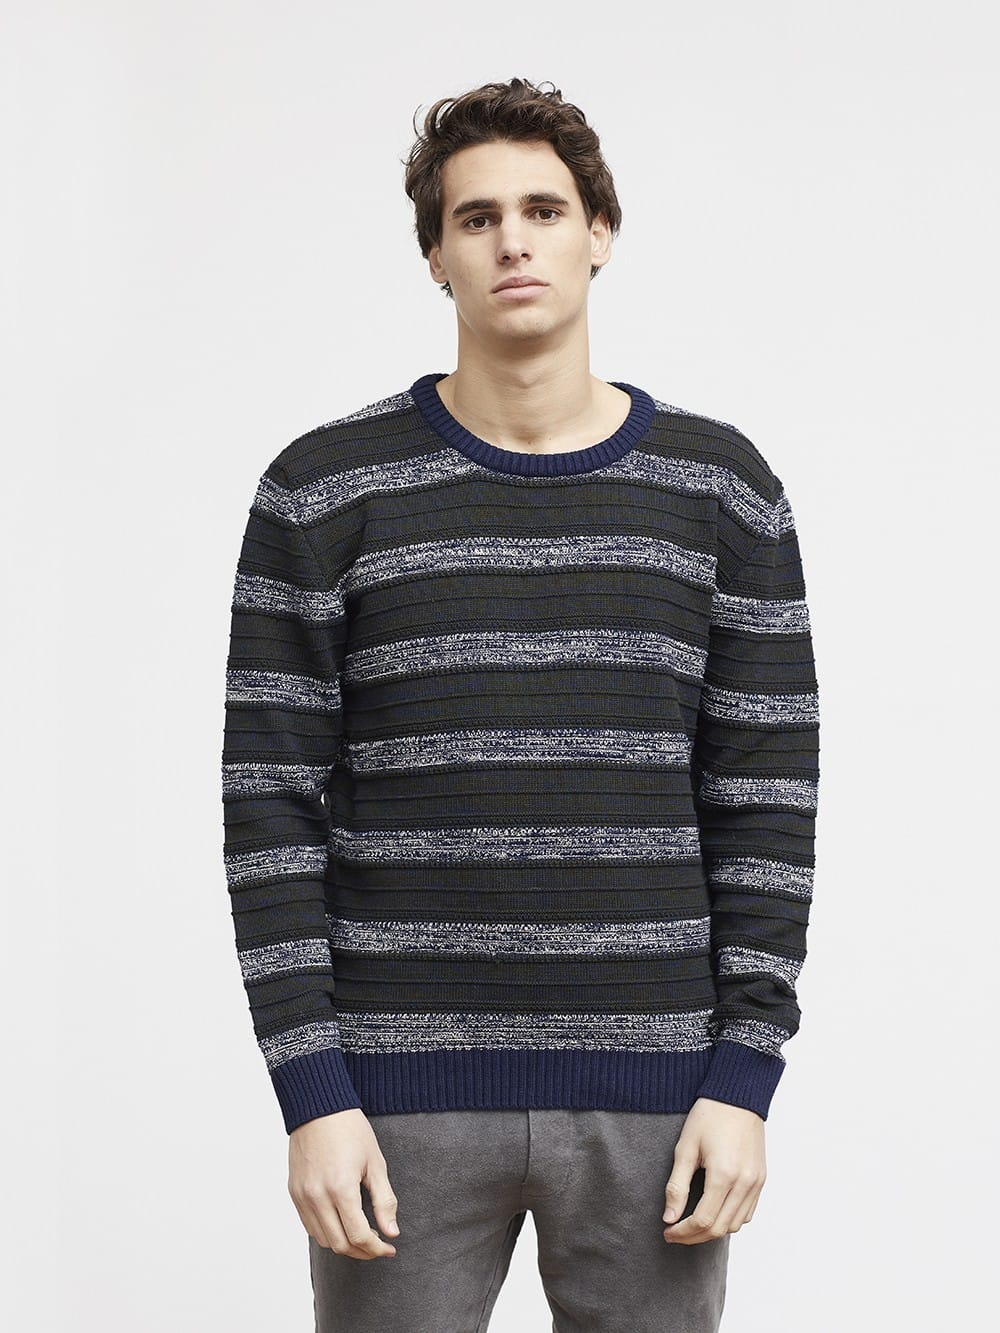 Green sweater with stripes made of recycled materials